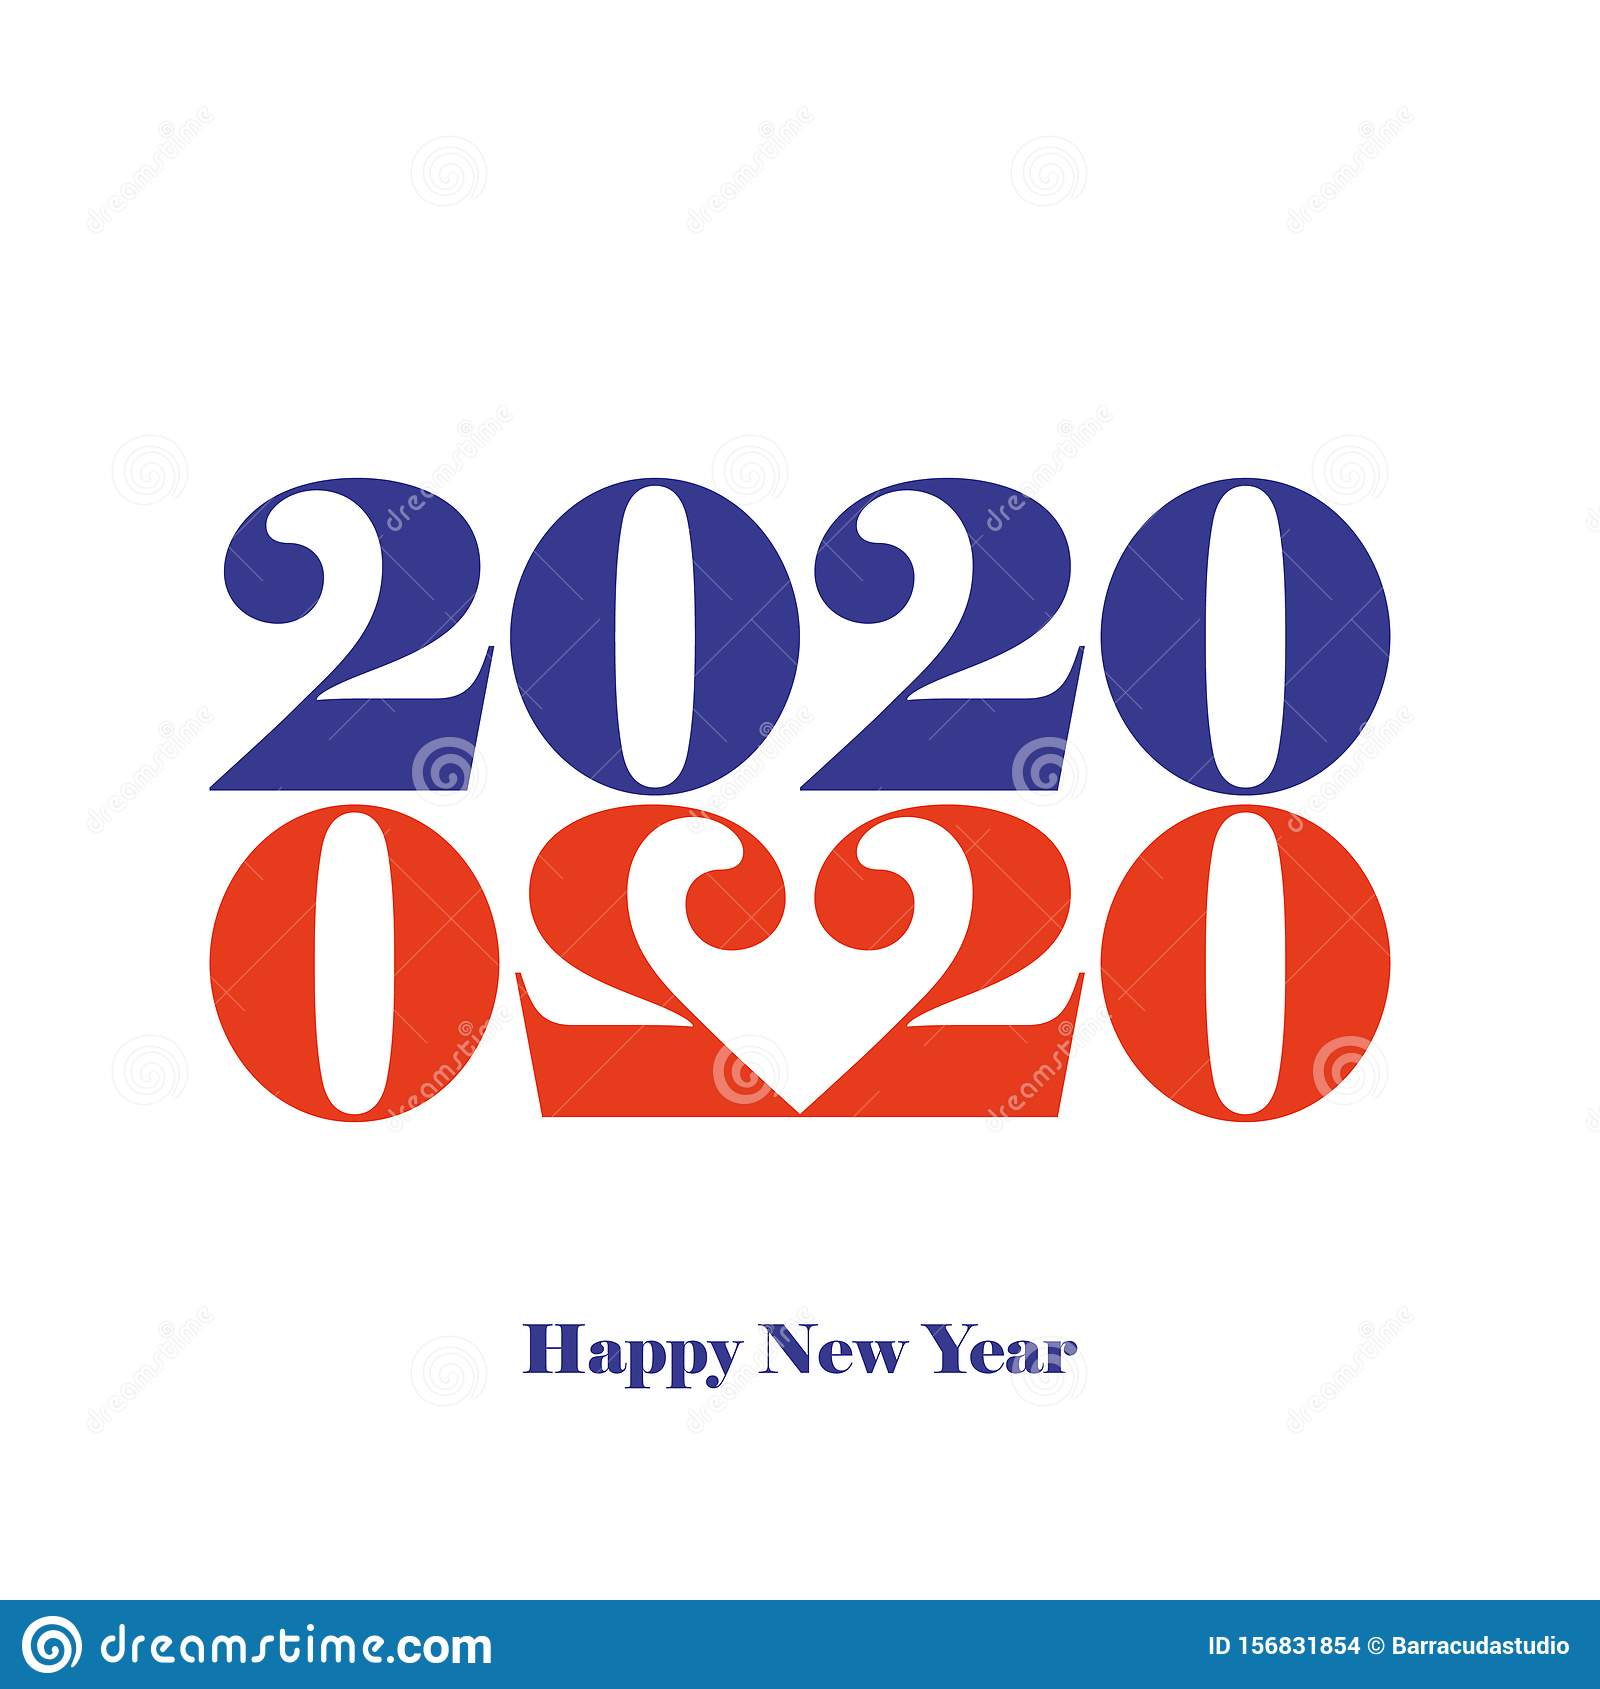 Happy New Year 2020 Greeting Card 2020 Year Typography